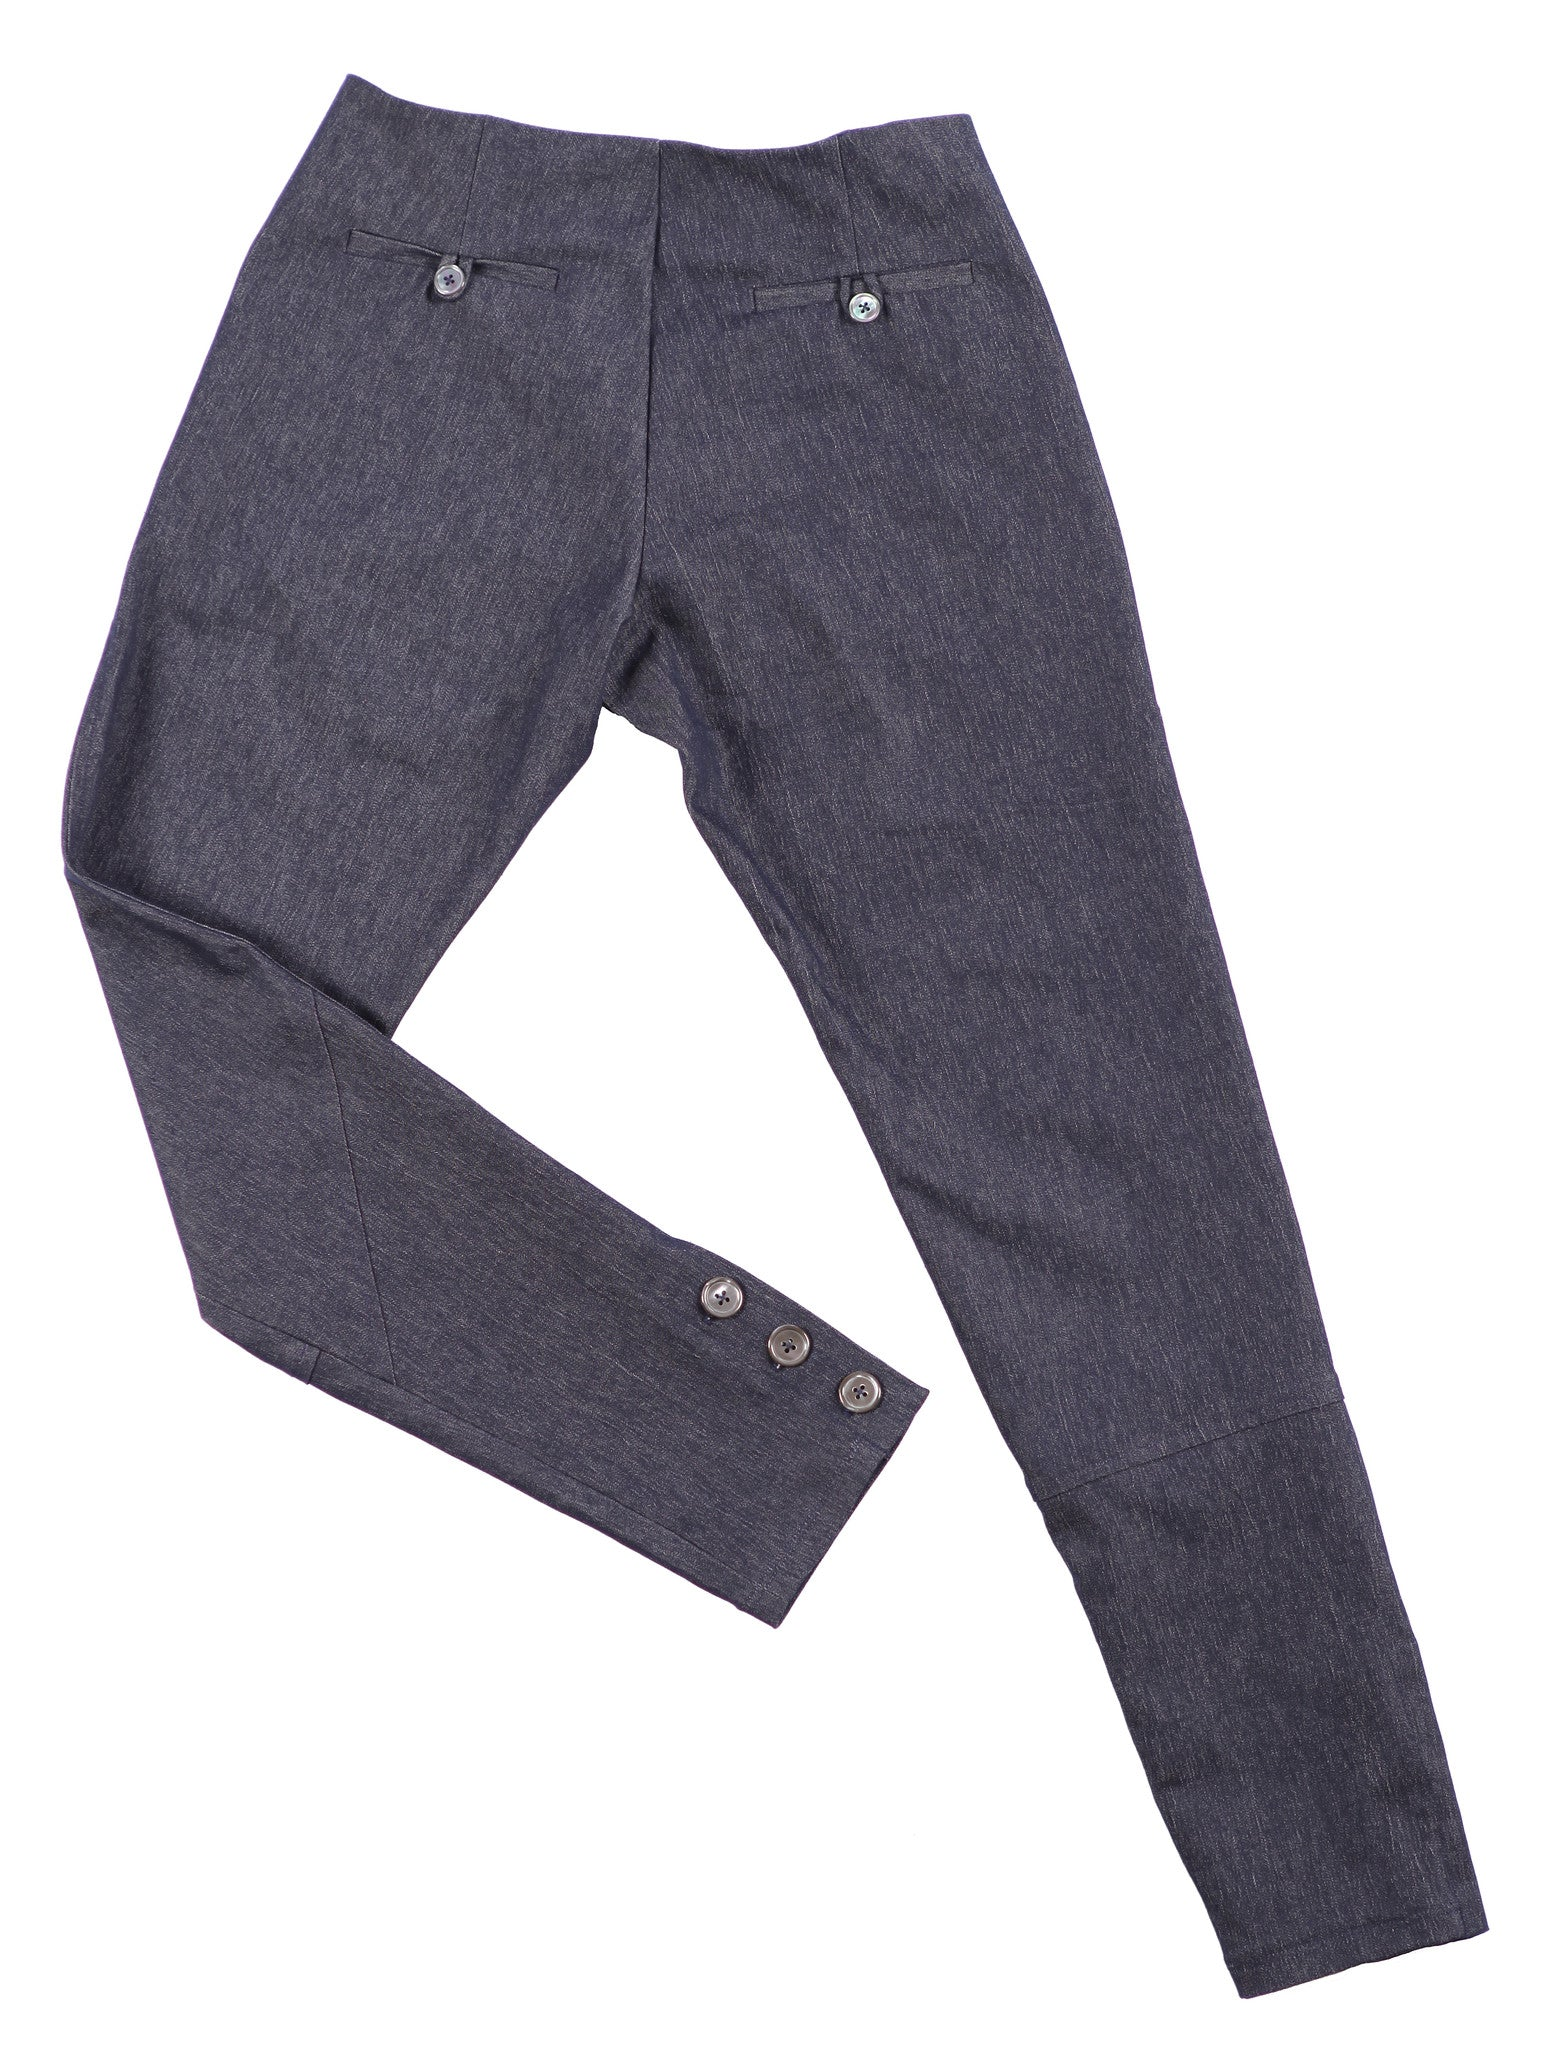 Trousers Denim - Jenny M. London  - 3